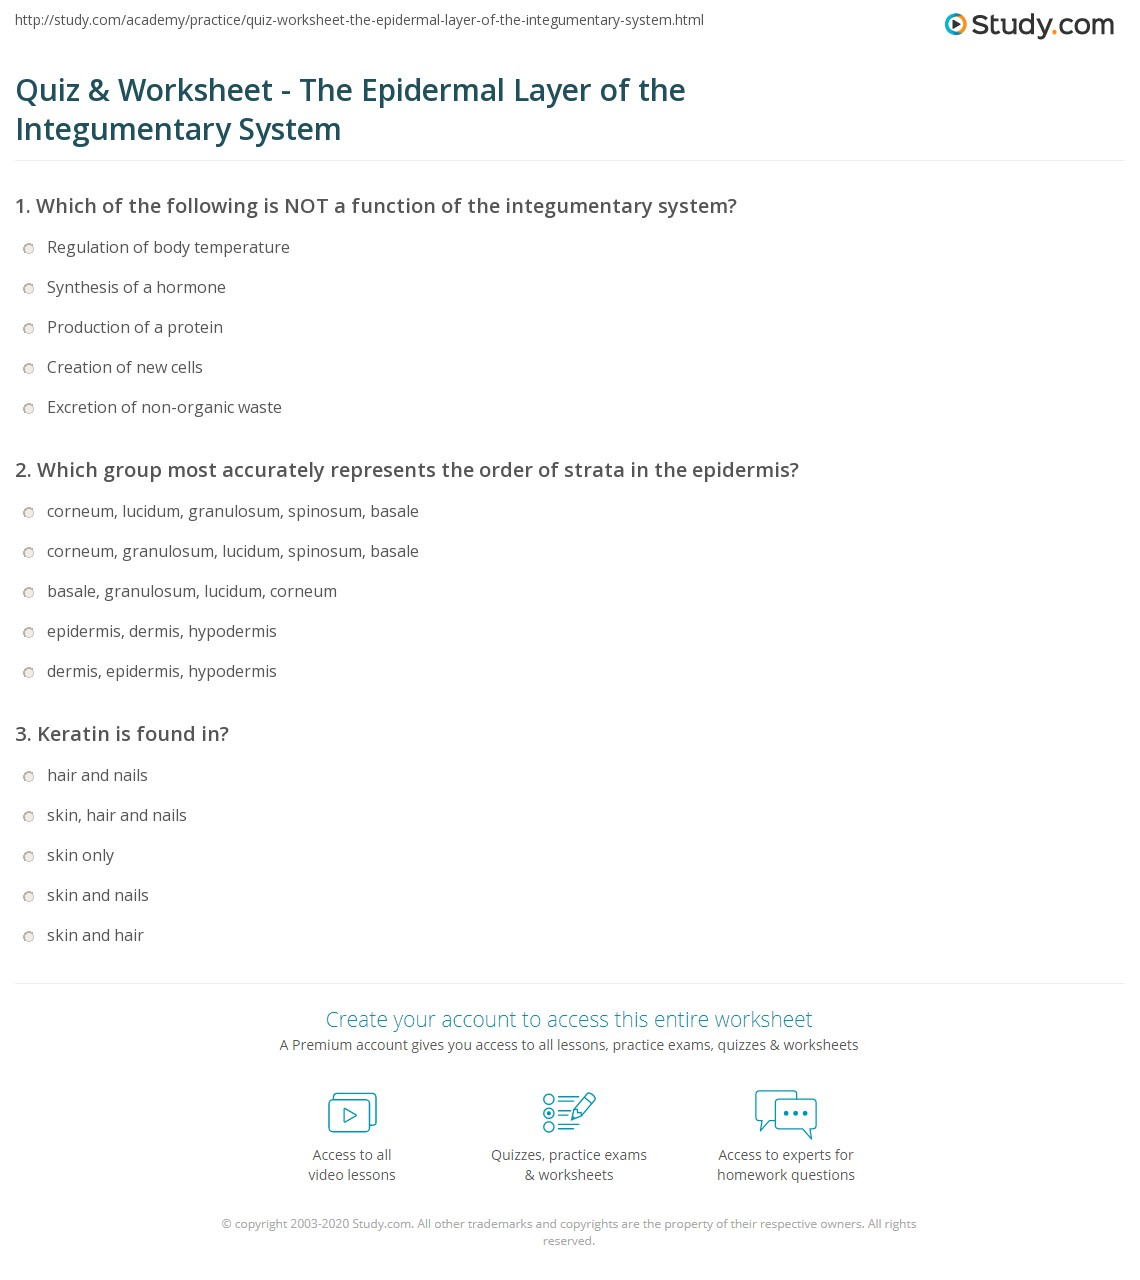 Quiz Worksheet The Epidermal Layer Of The Integumentary System